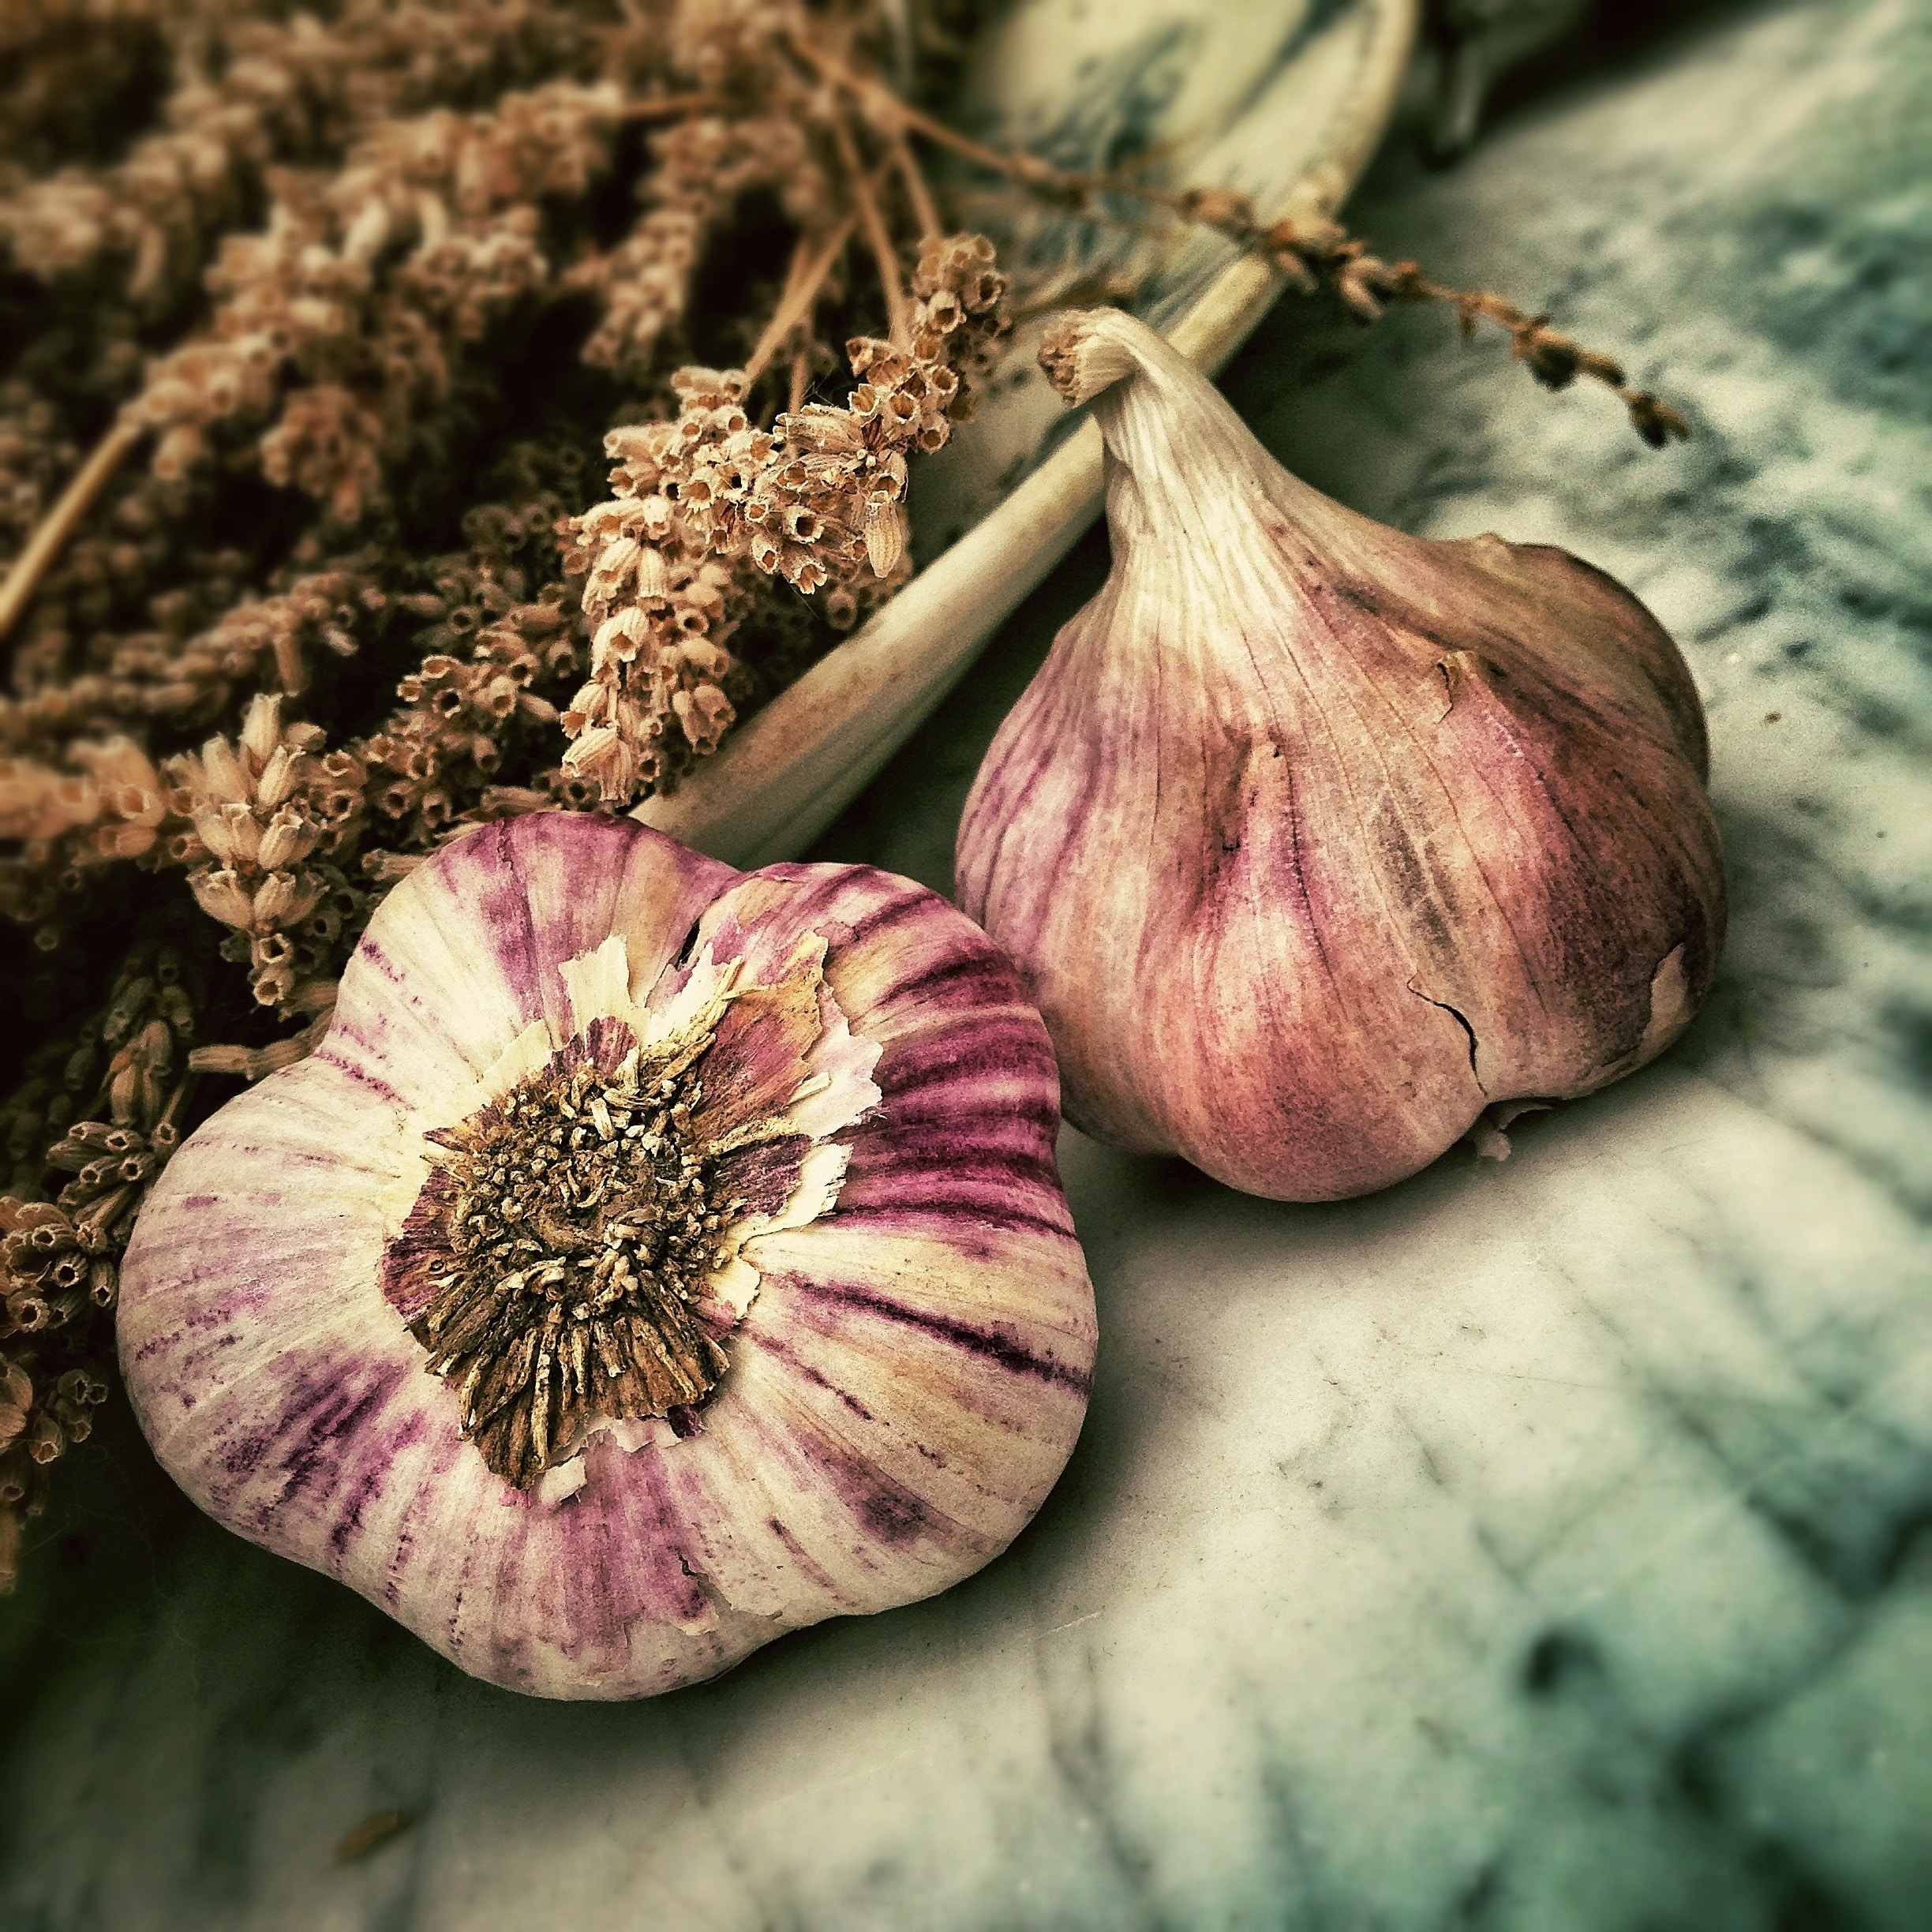 Garlic feeds the good gut bugs in our gut and kills the bad. The good bugs improve our health and the bad bugs worsen our health.